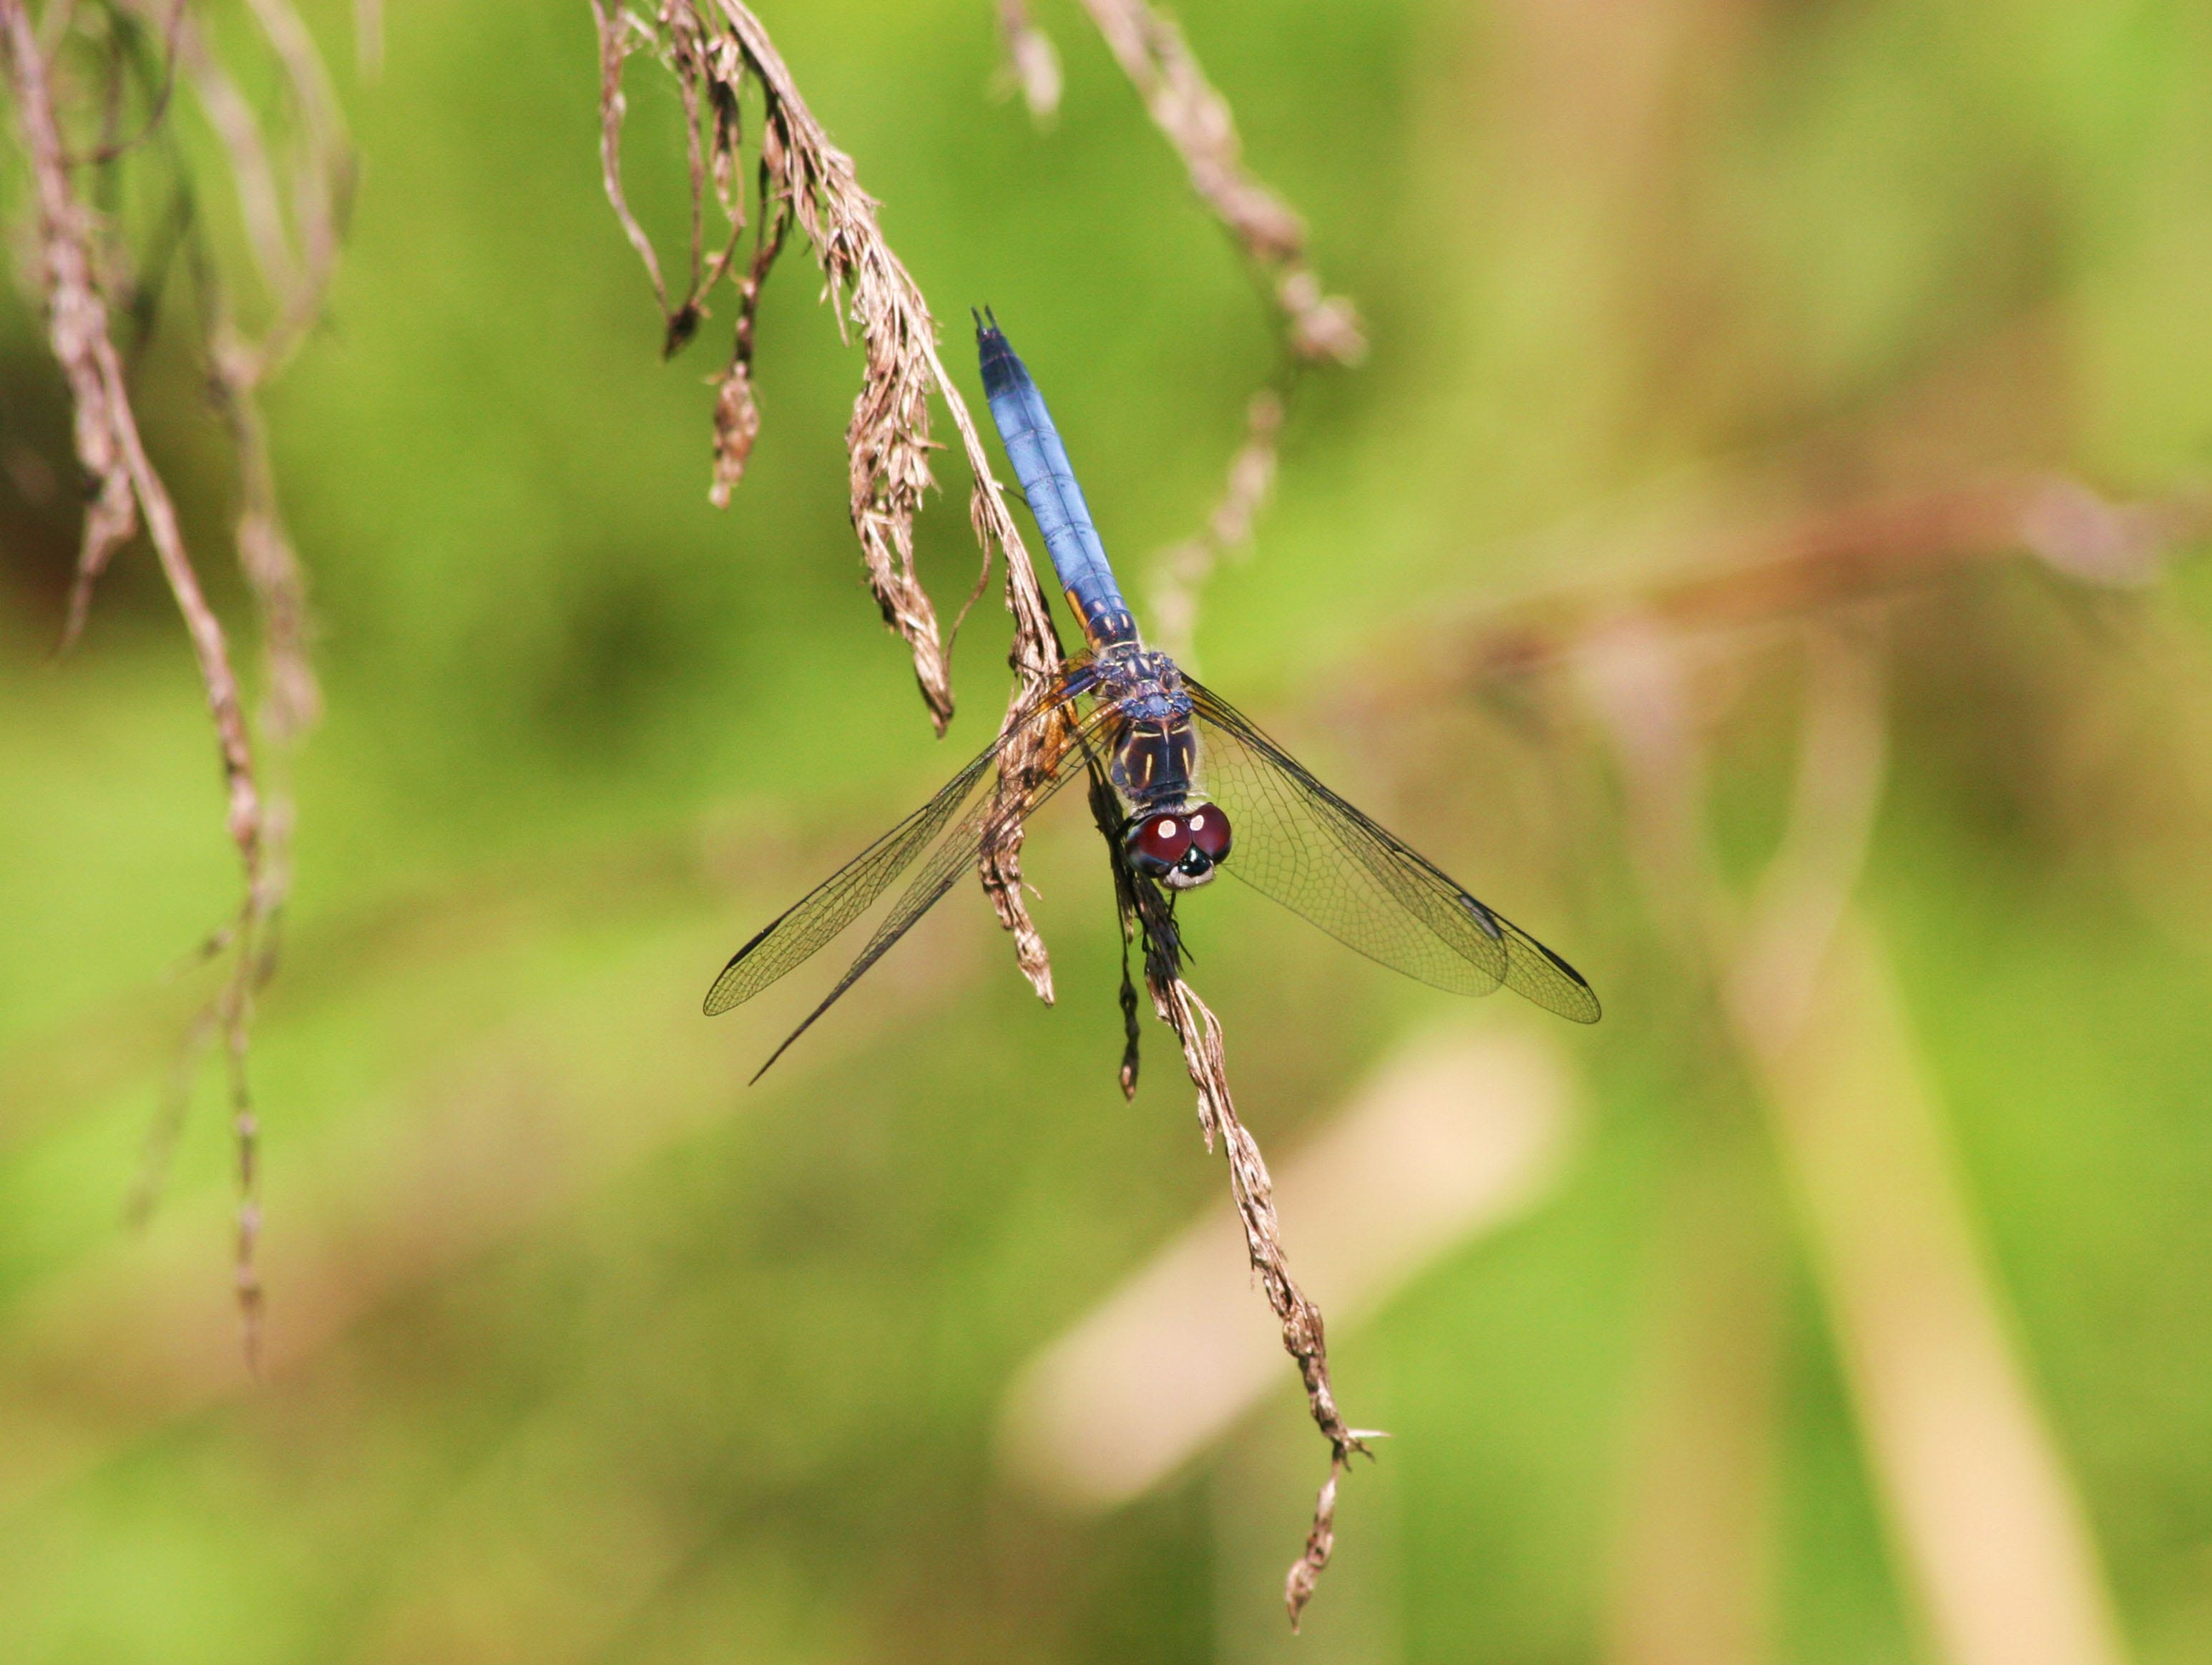 This dragonfly photo was captured by Donna Chesney.